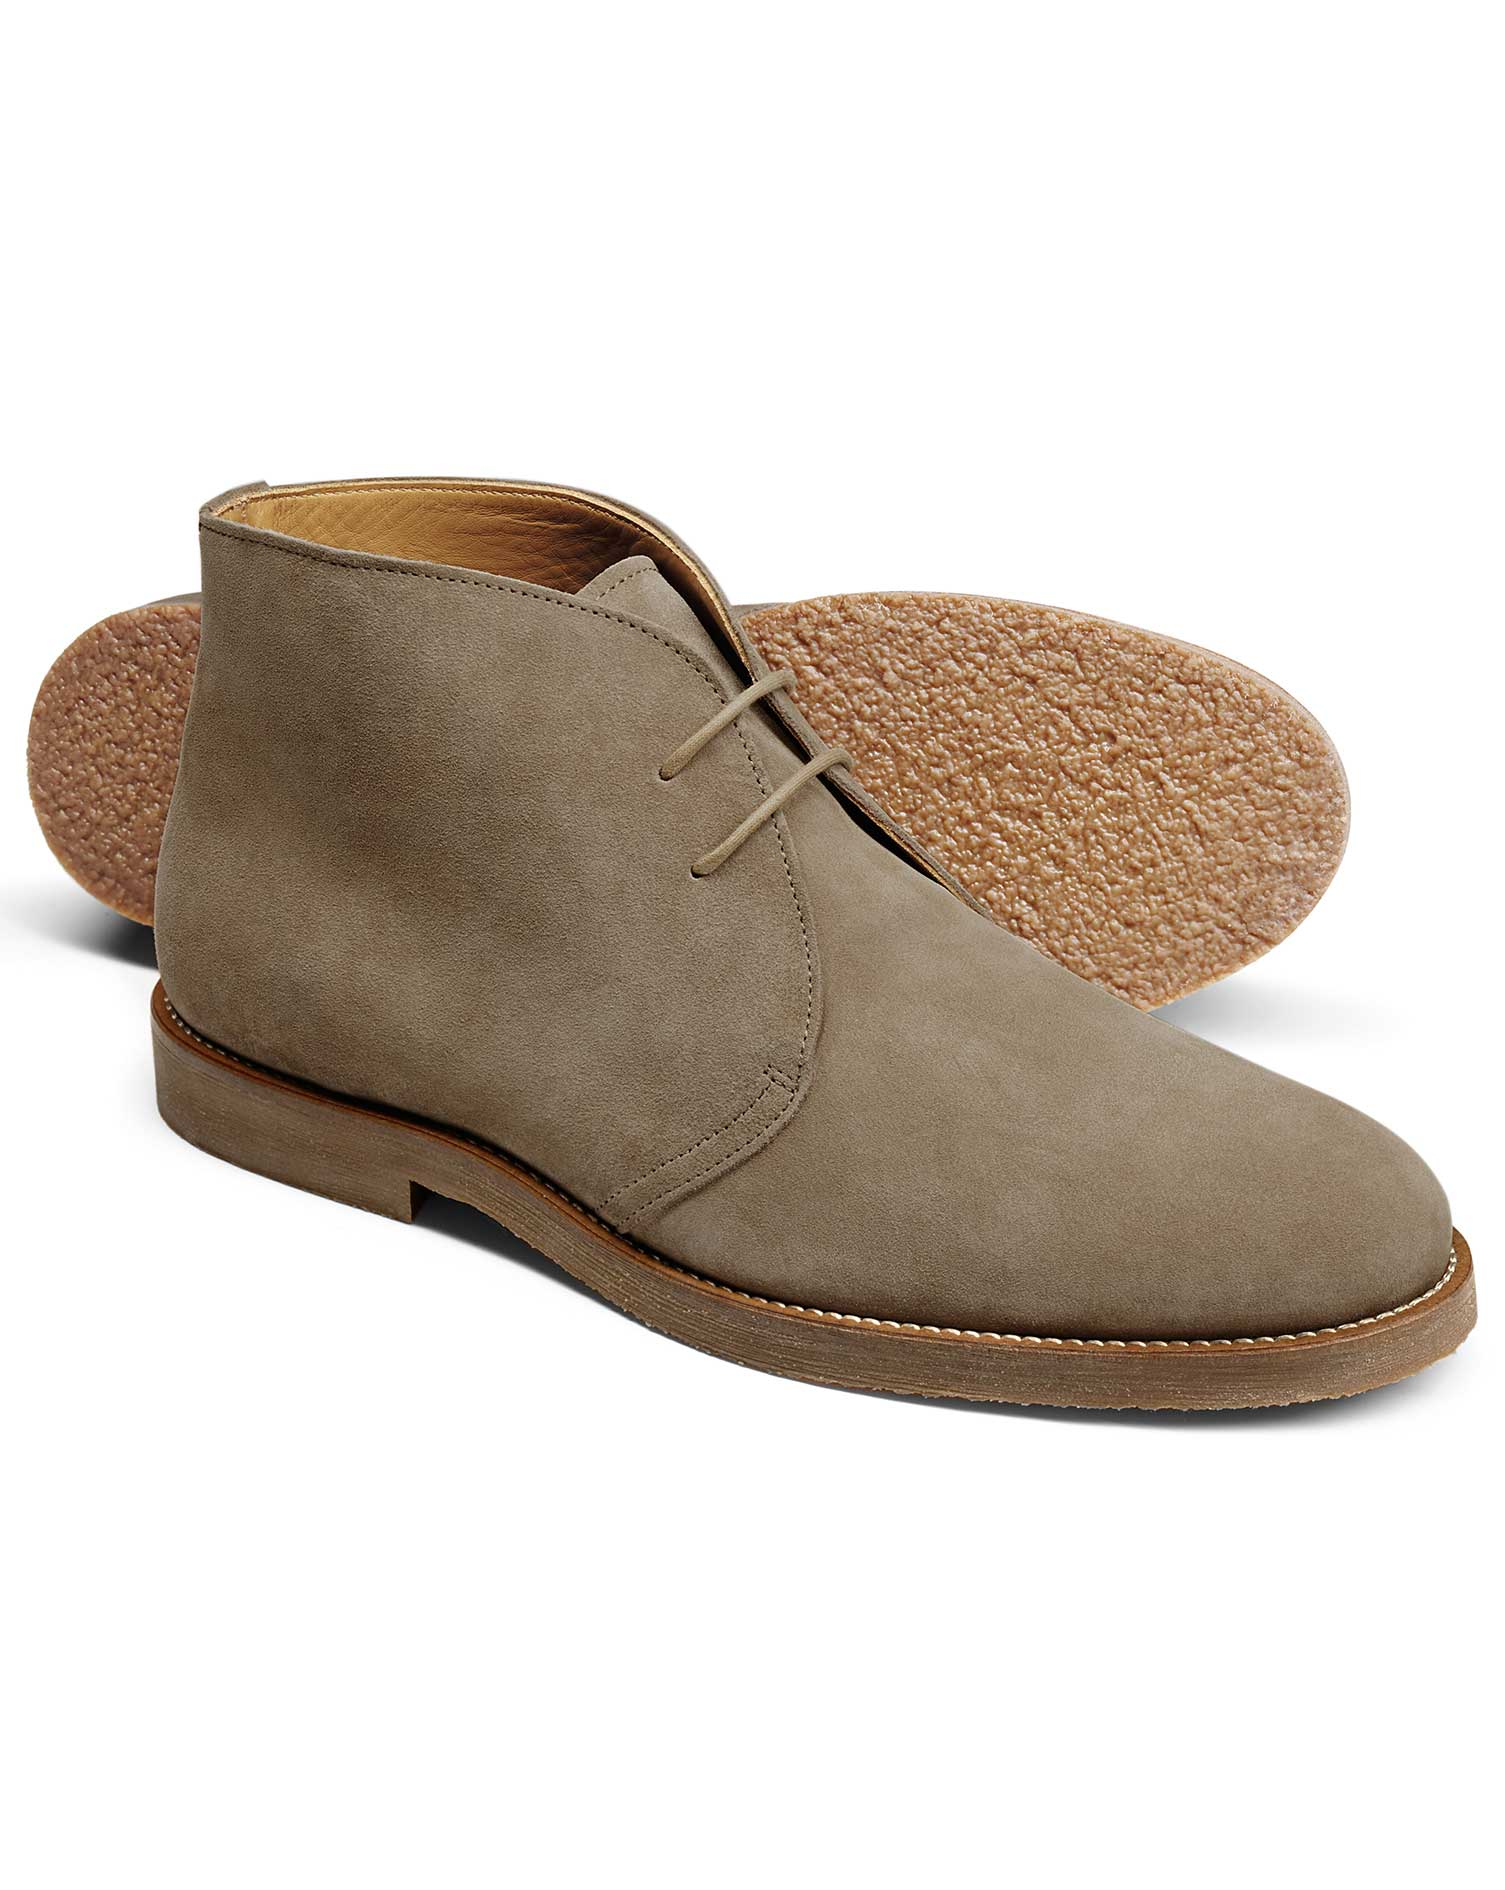 Stone Suede Desert Boot Size 9 R by Charles Tyrwhitt